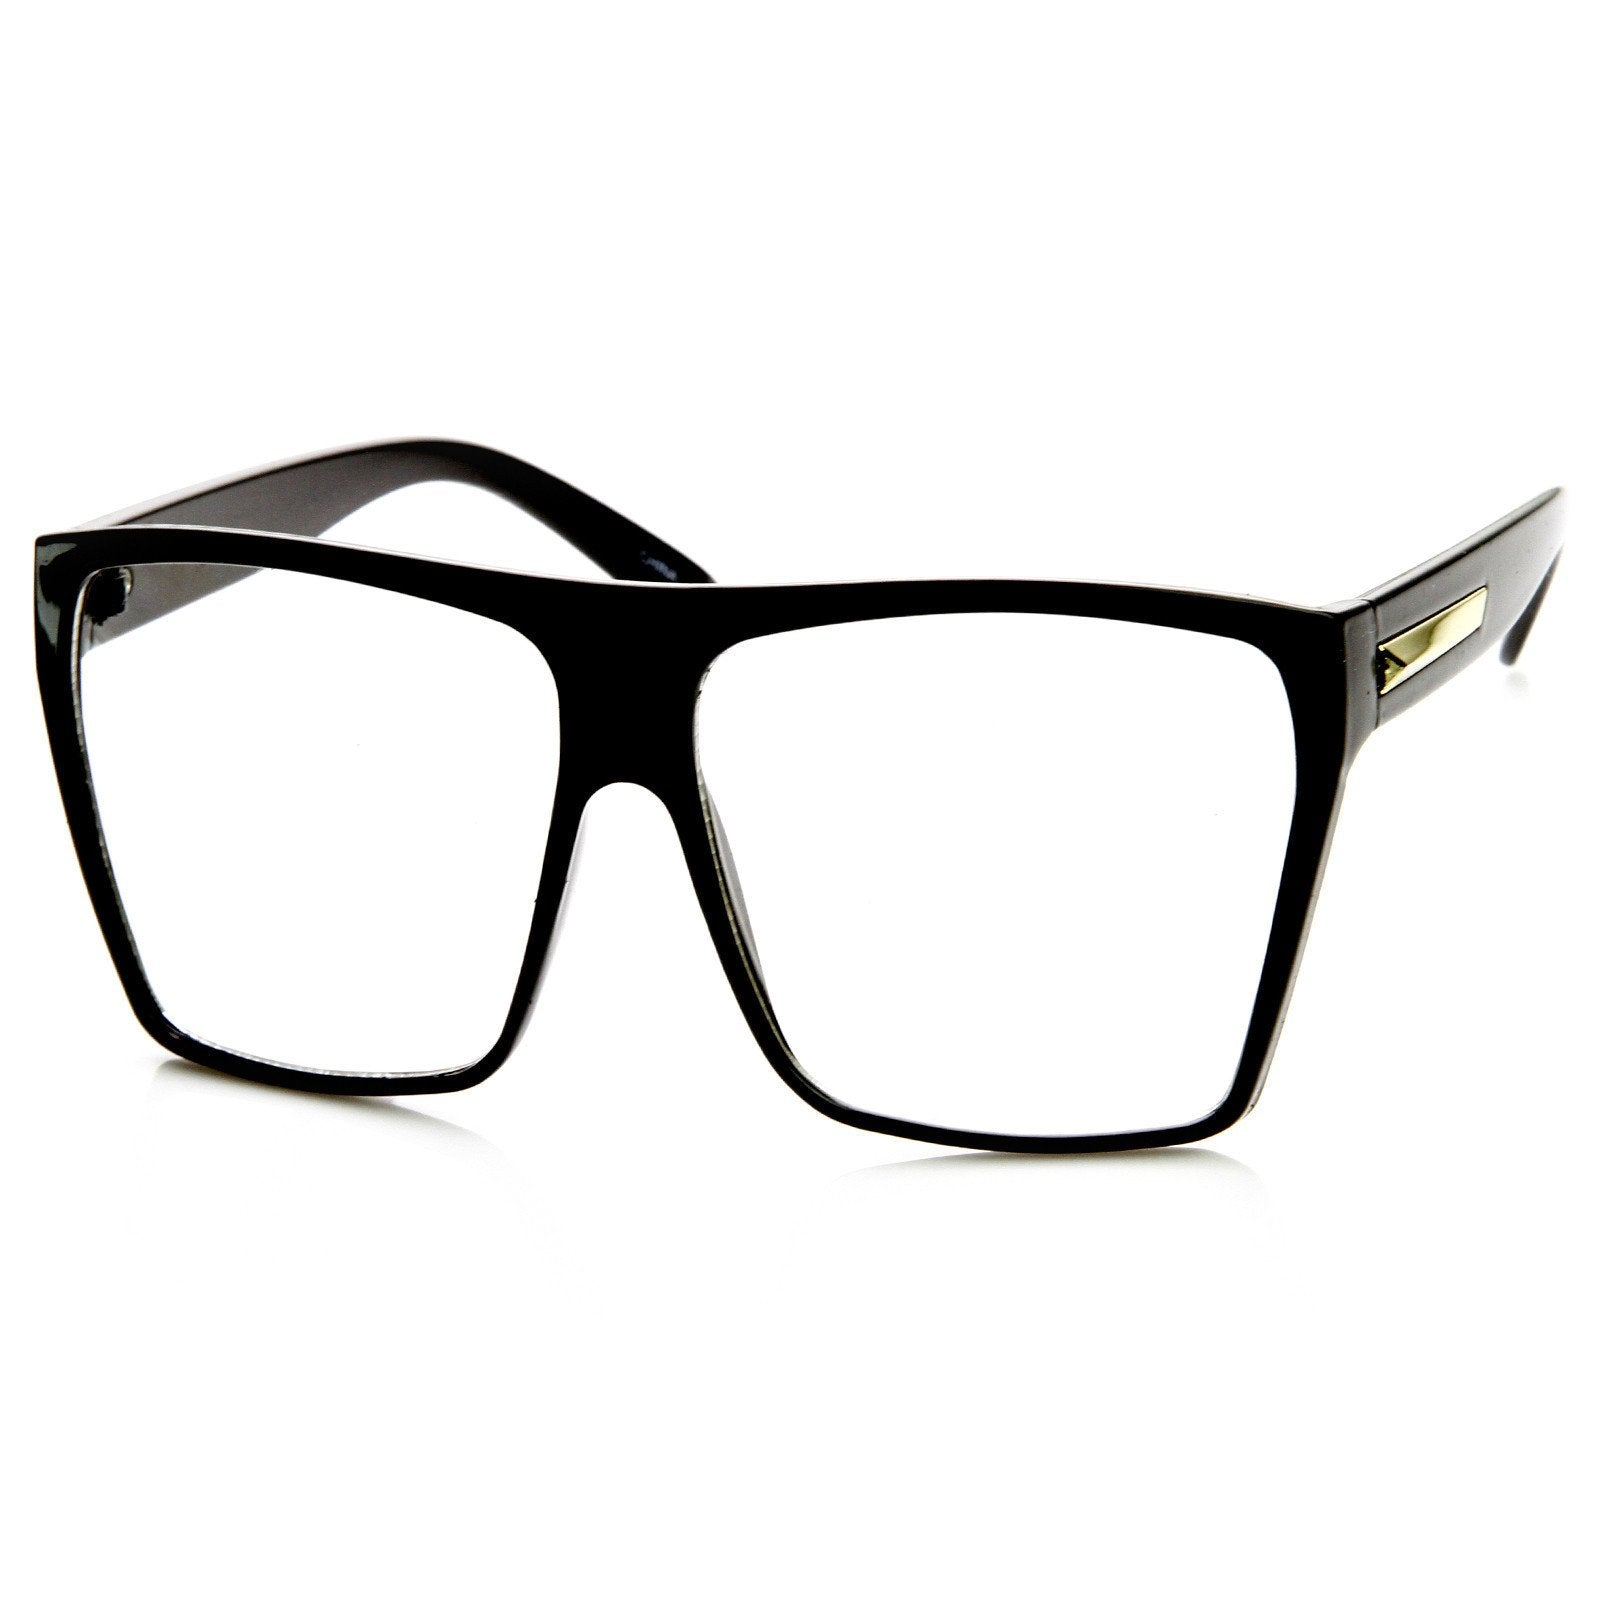 97a0b386fe5 ... Super Oversize Square Clear Lens Fashion Glasses 8830 · Black · Black